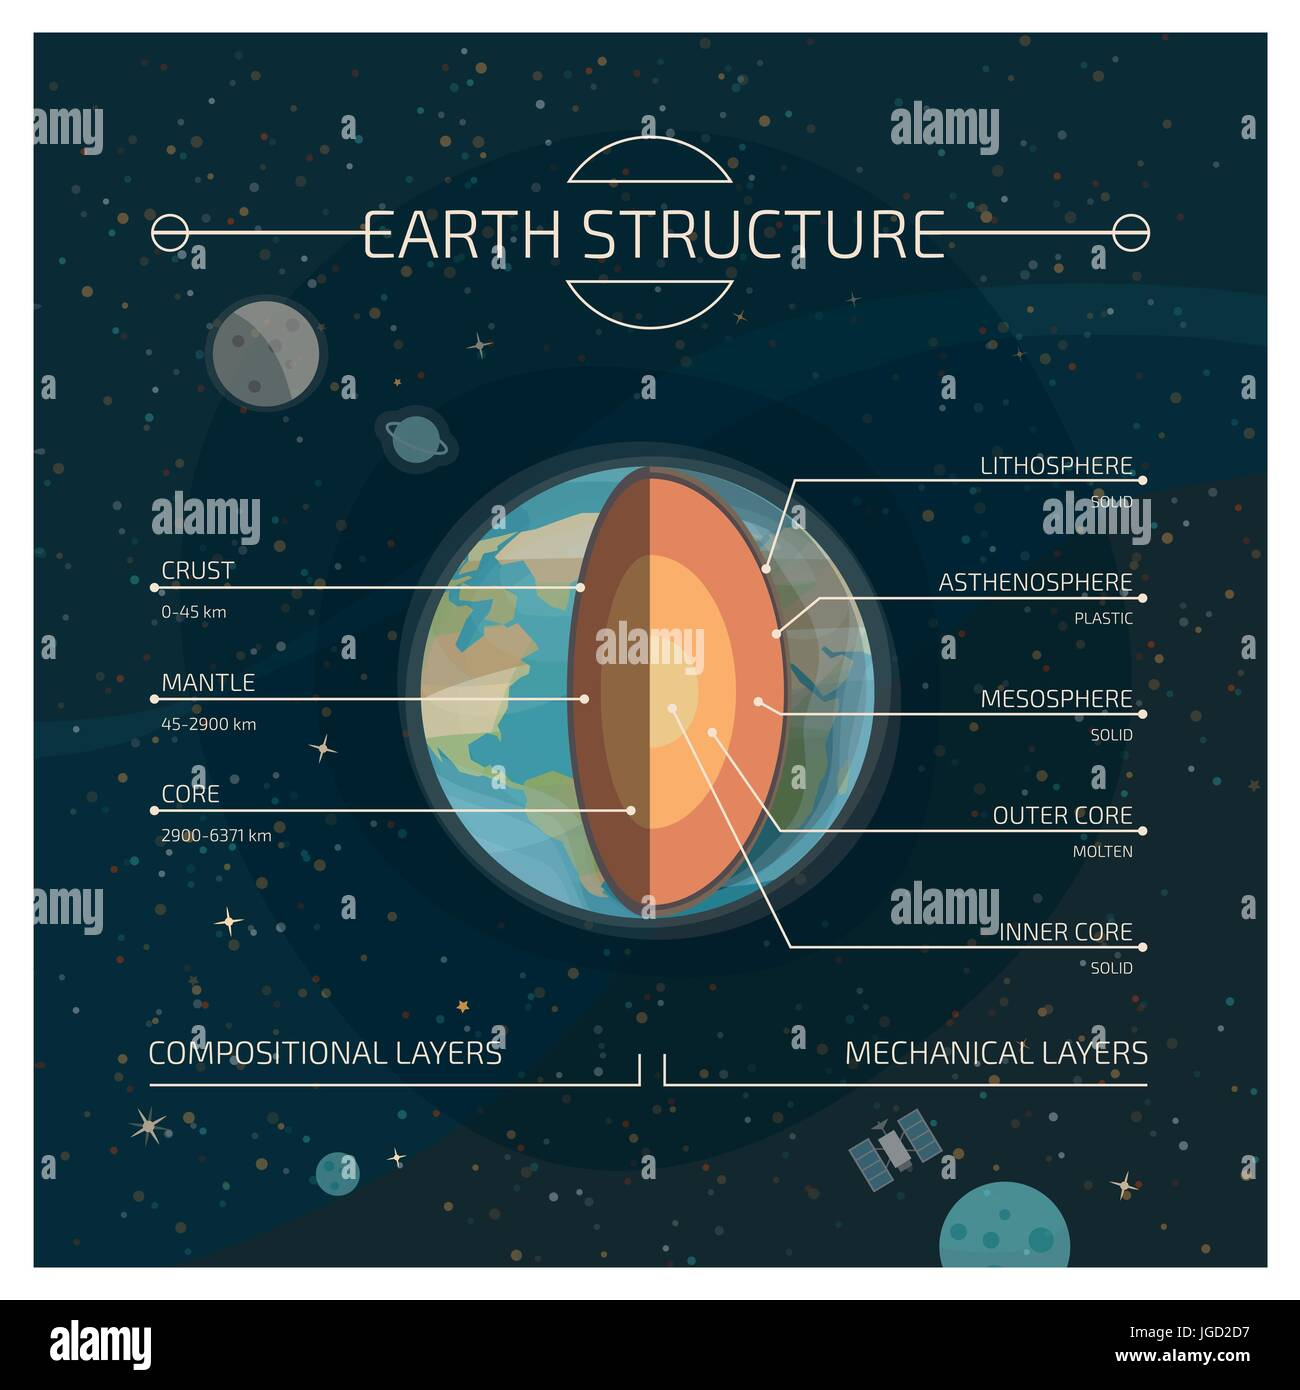 The Interior Layered Structure Of The Earth Compositional